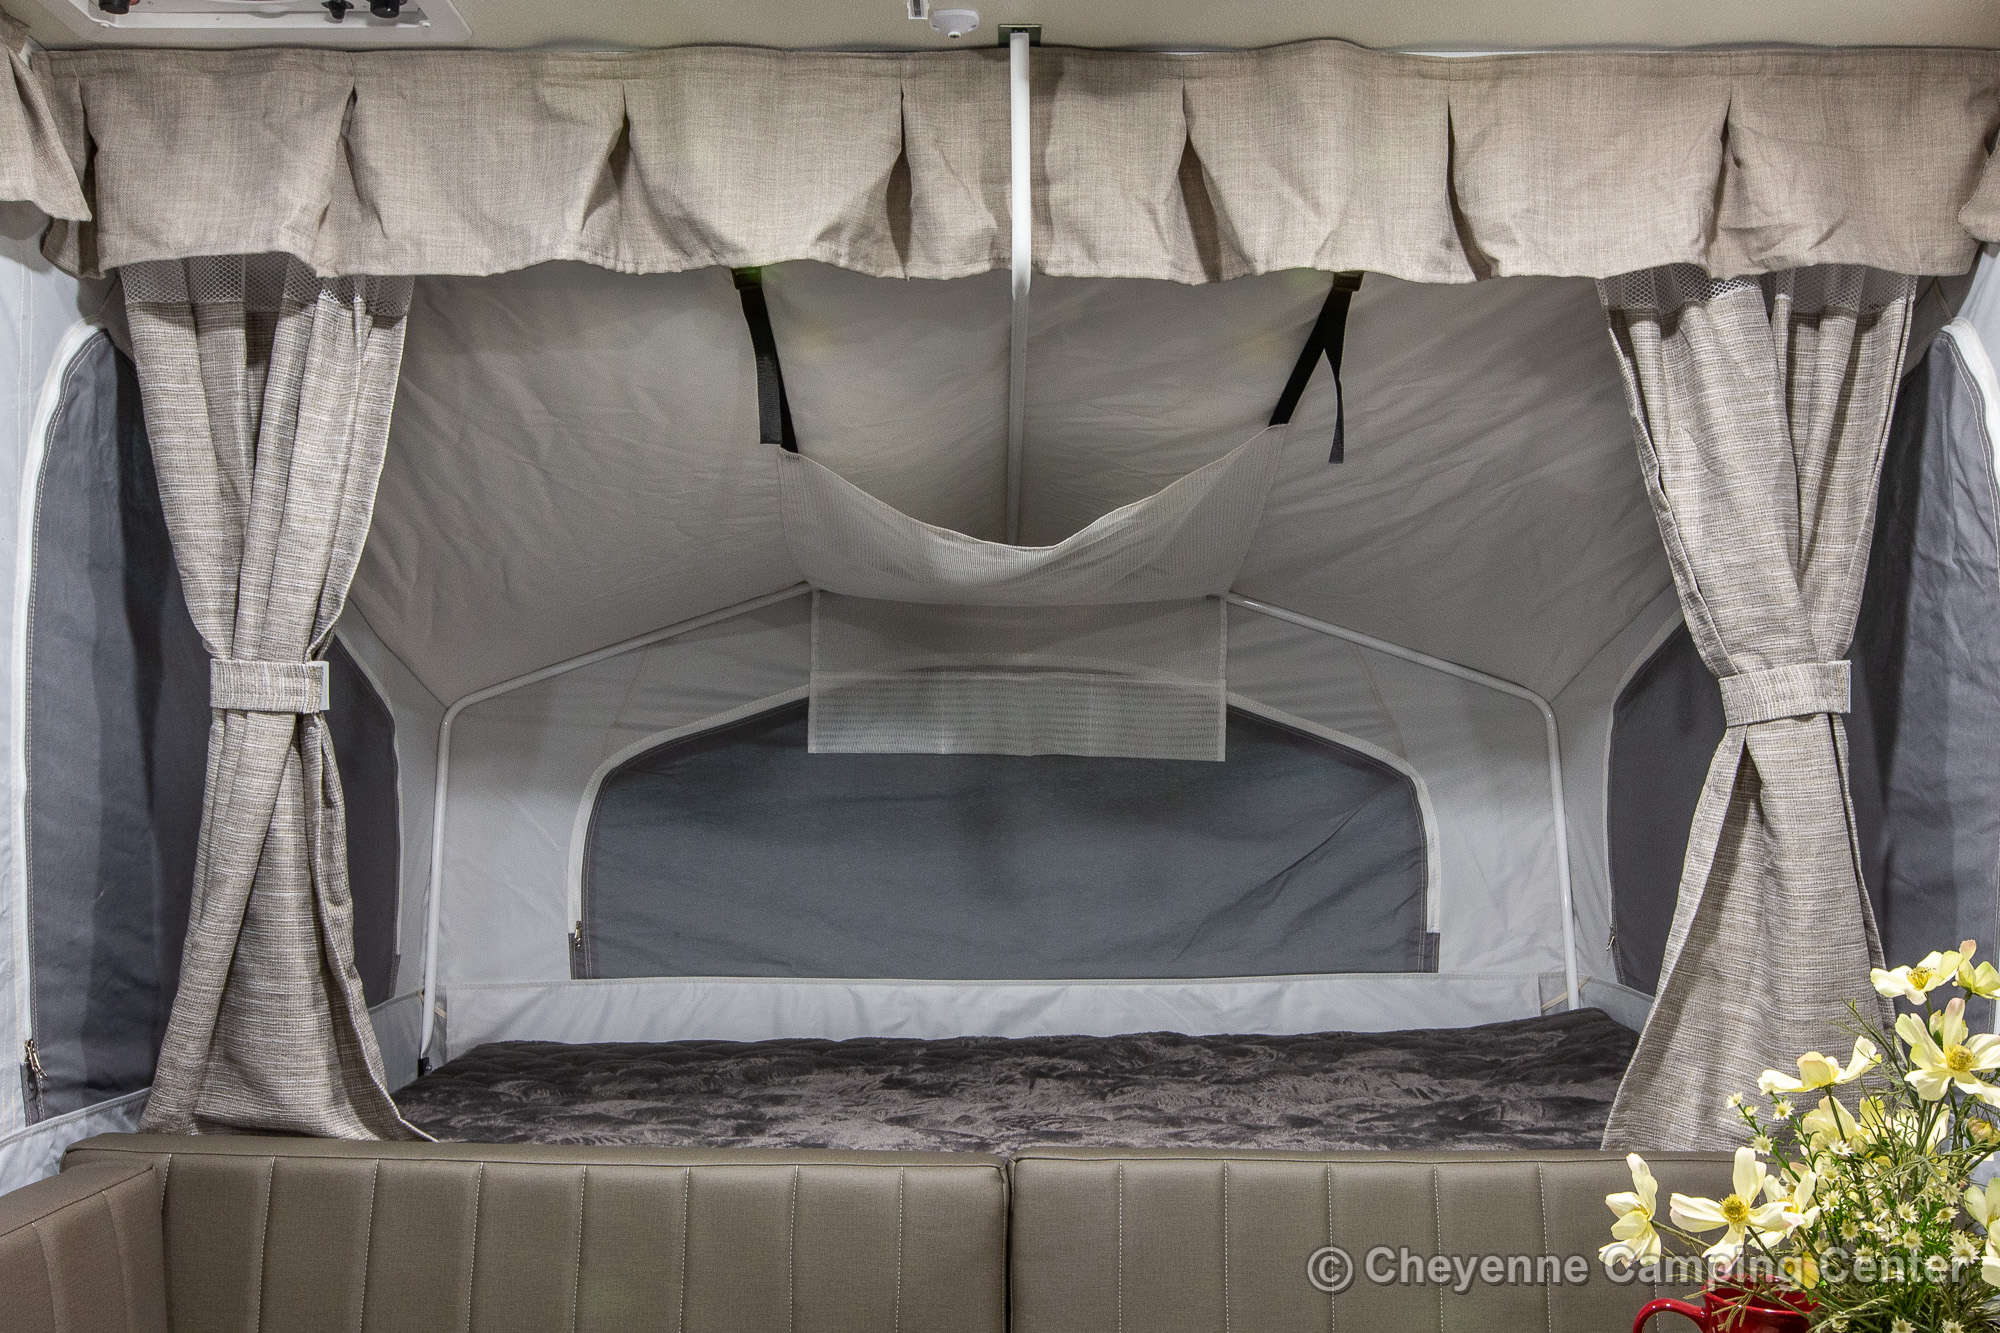 2022 Forest River Flagstaff Sports Enthusiast 206STSE Folding Camper Interior Image